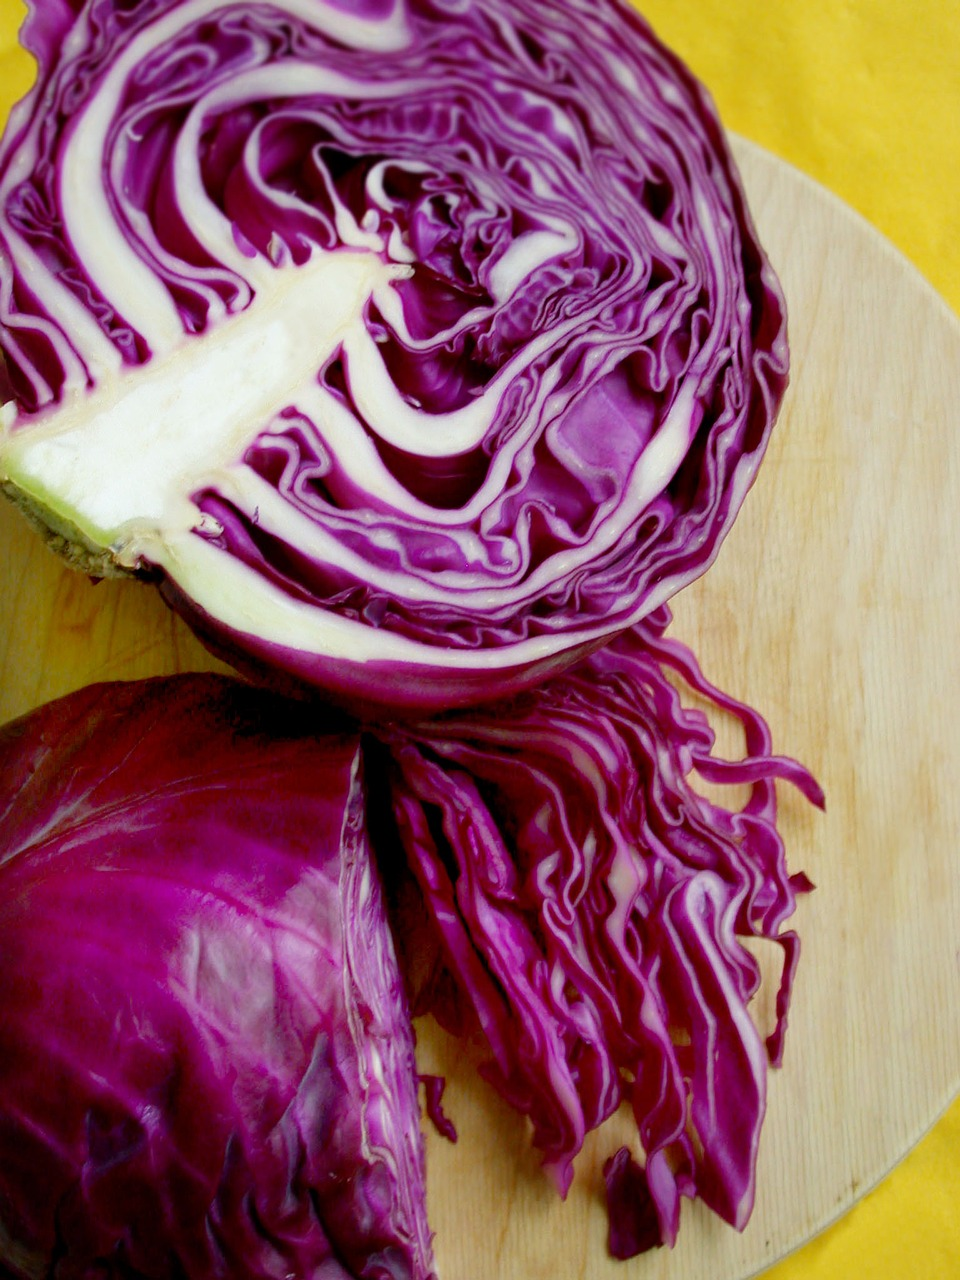 red-cabbage-2159547_1280.jpg